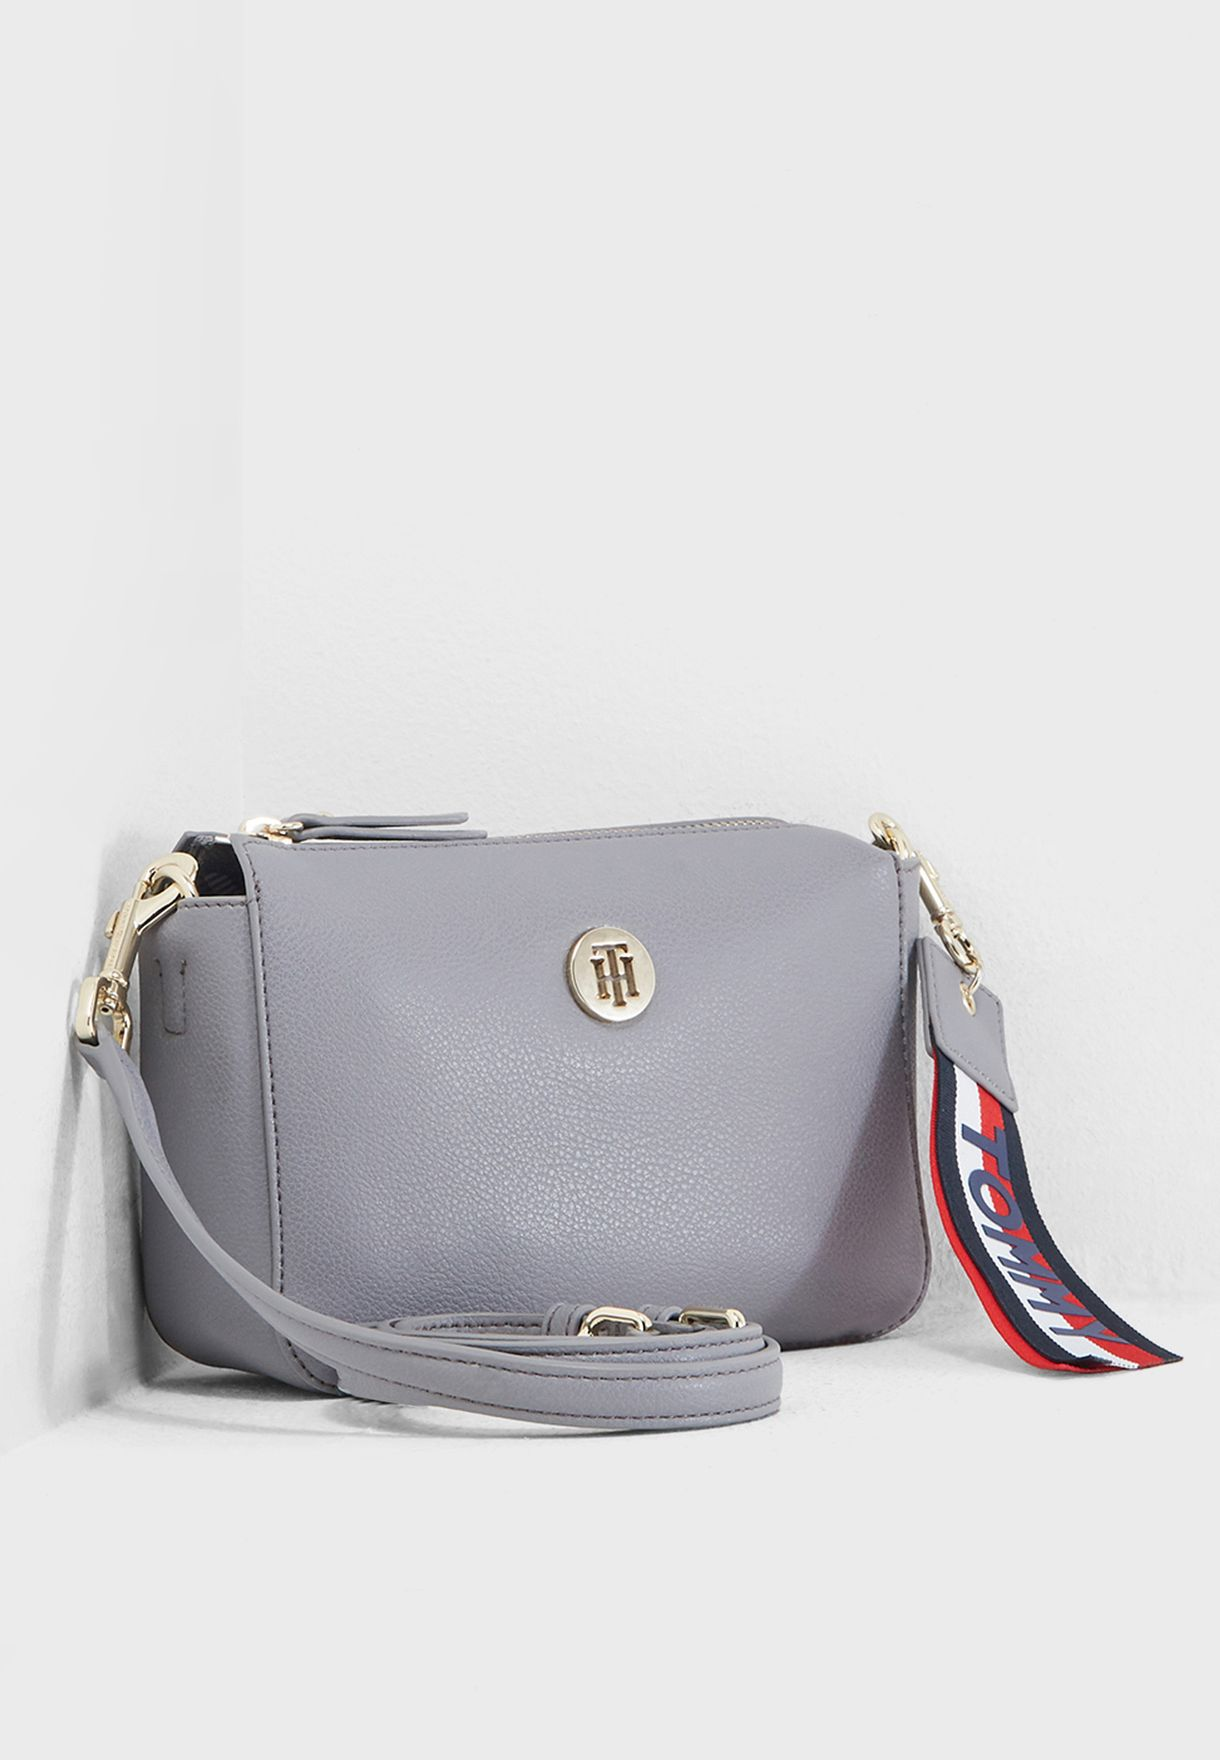 8a258d889d2 Shop Tommy Hilfiger grey Charming Flap Crossbody AW0AW05689 for ...